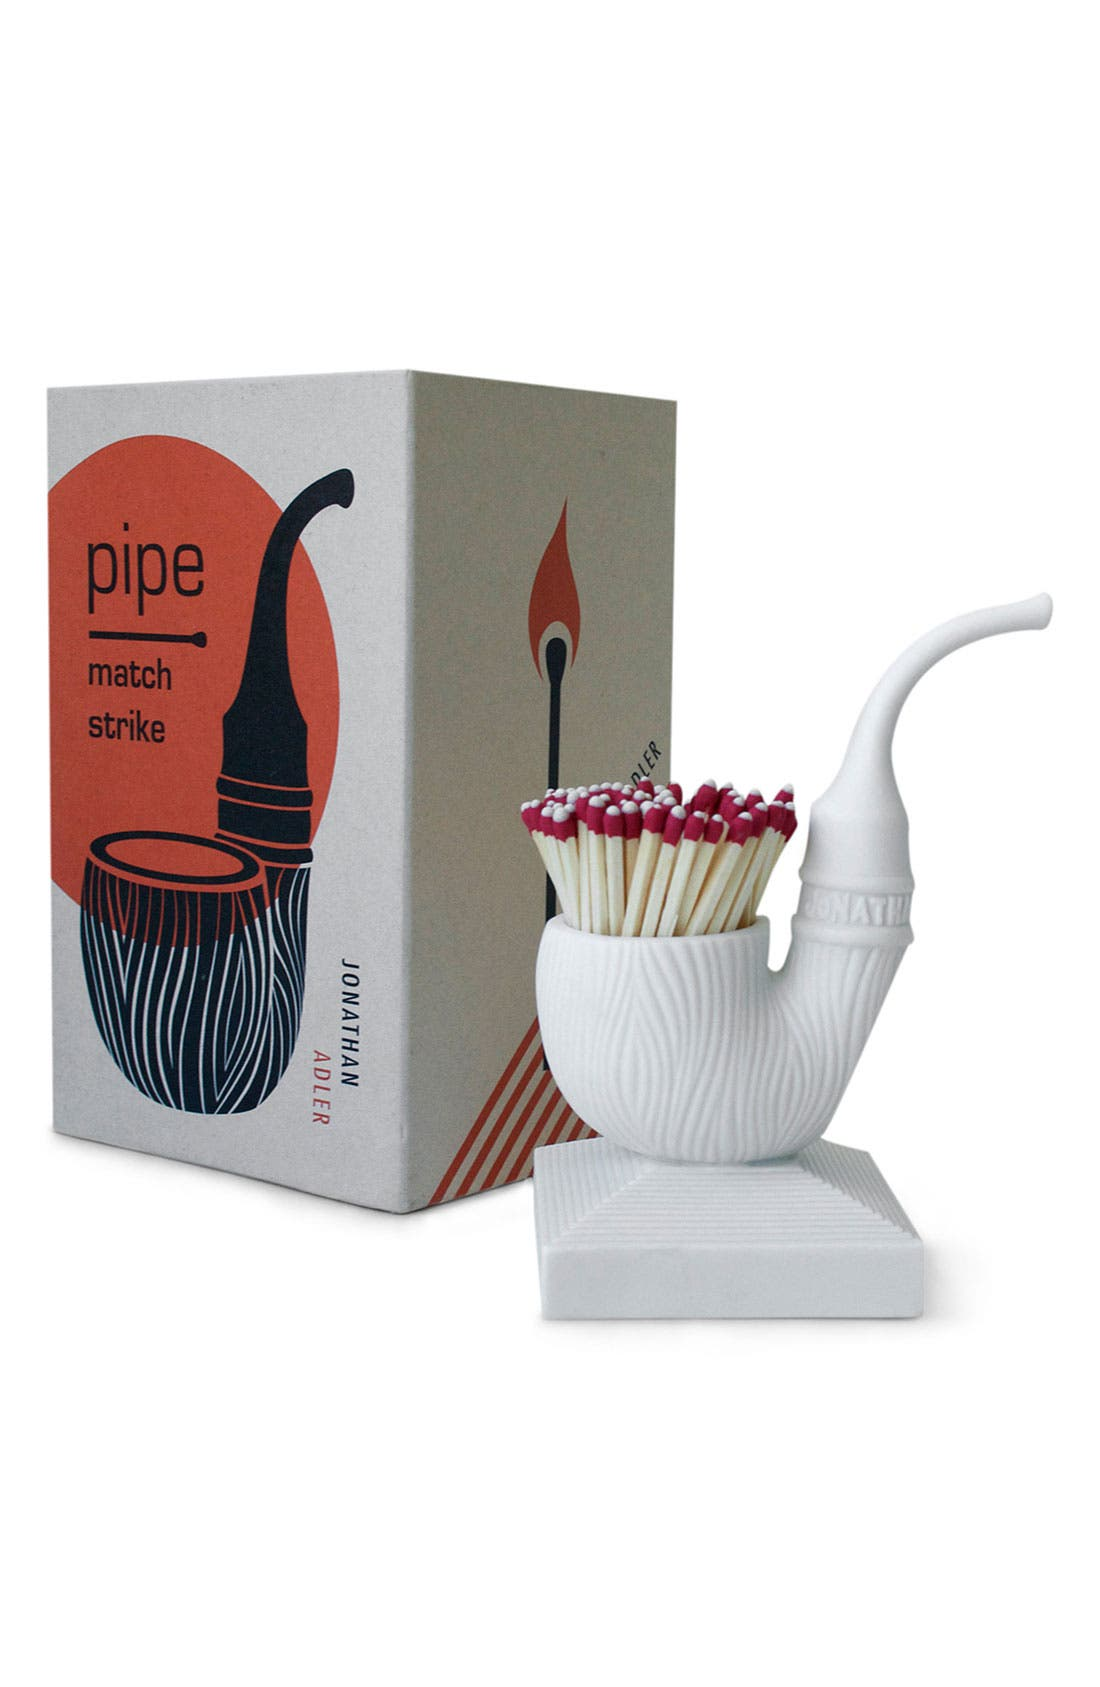 Alternate Image 1 Selected - Jonathan Adler 'Pipe' Porcelain Match Strike